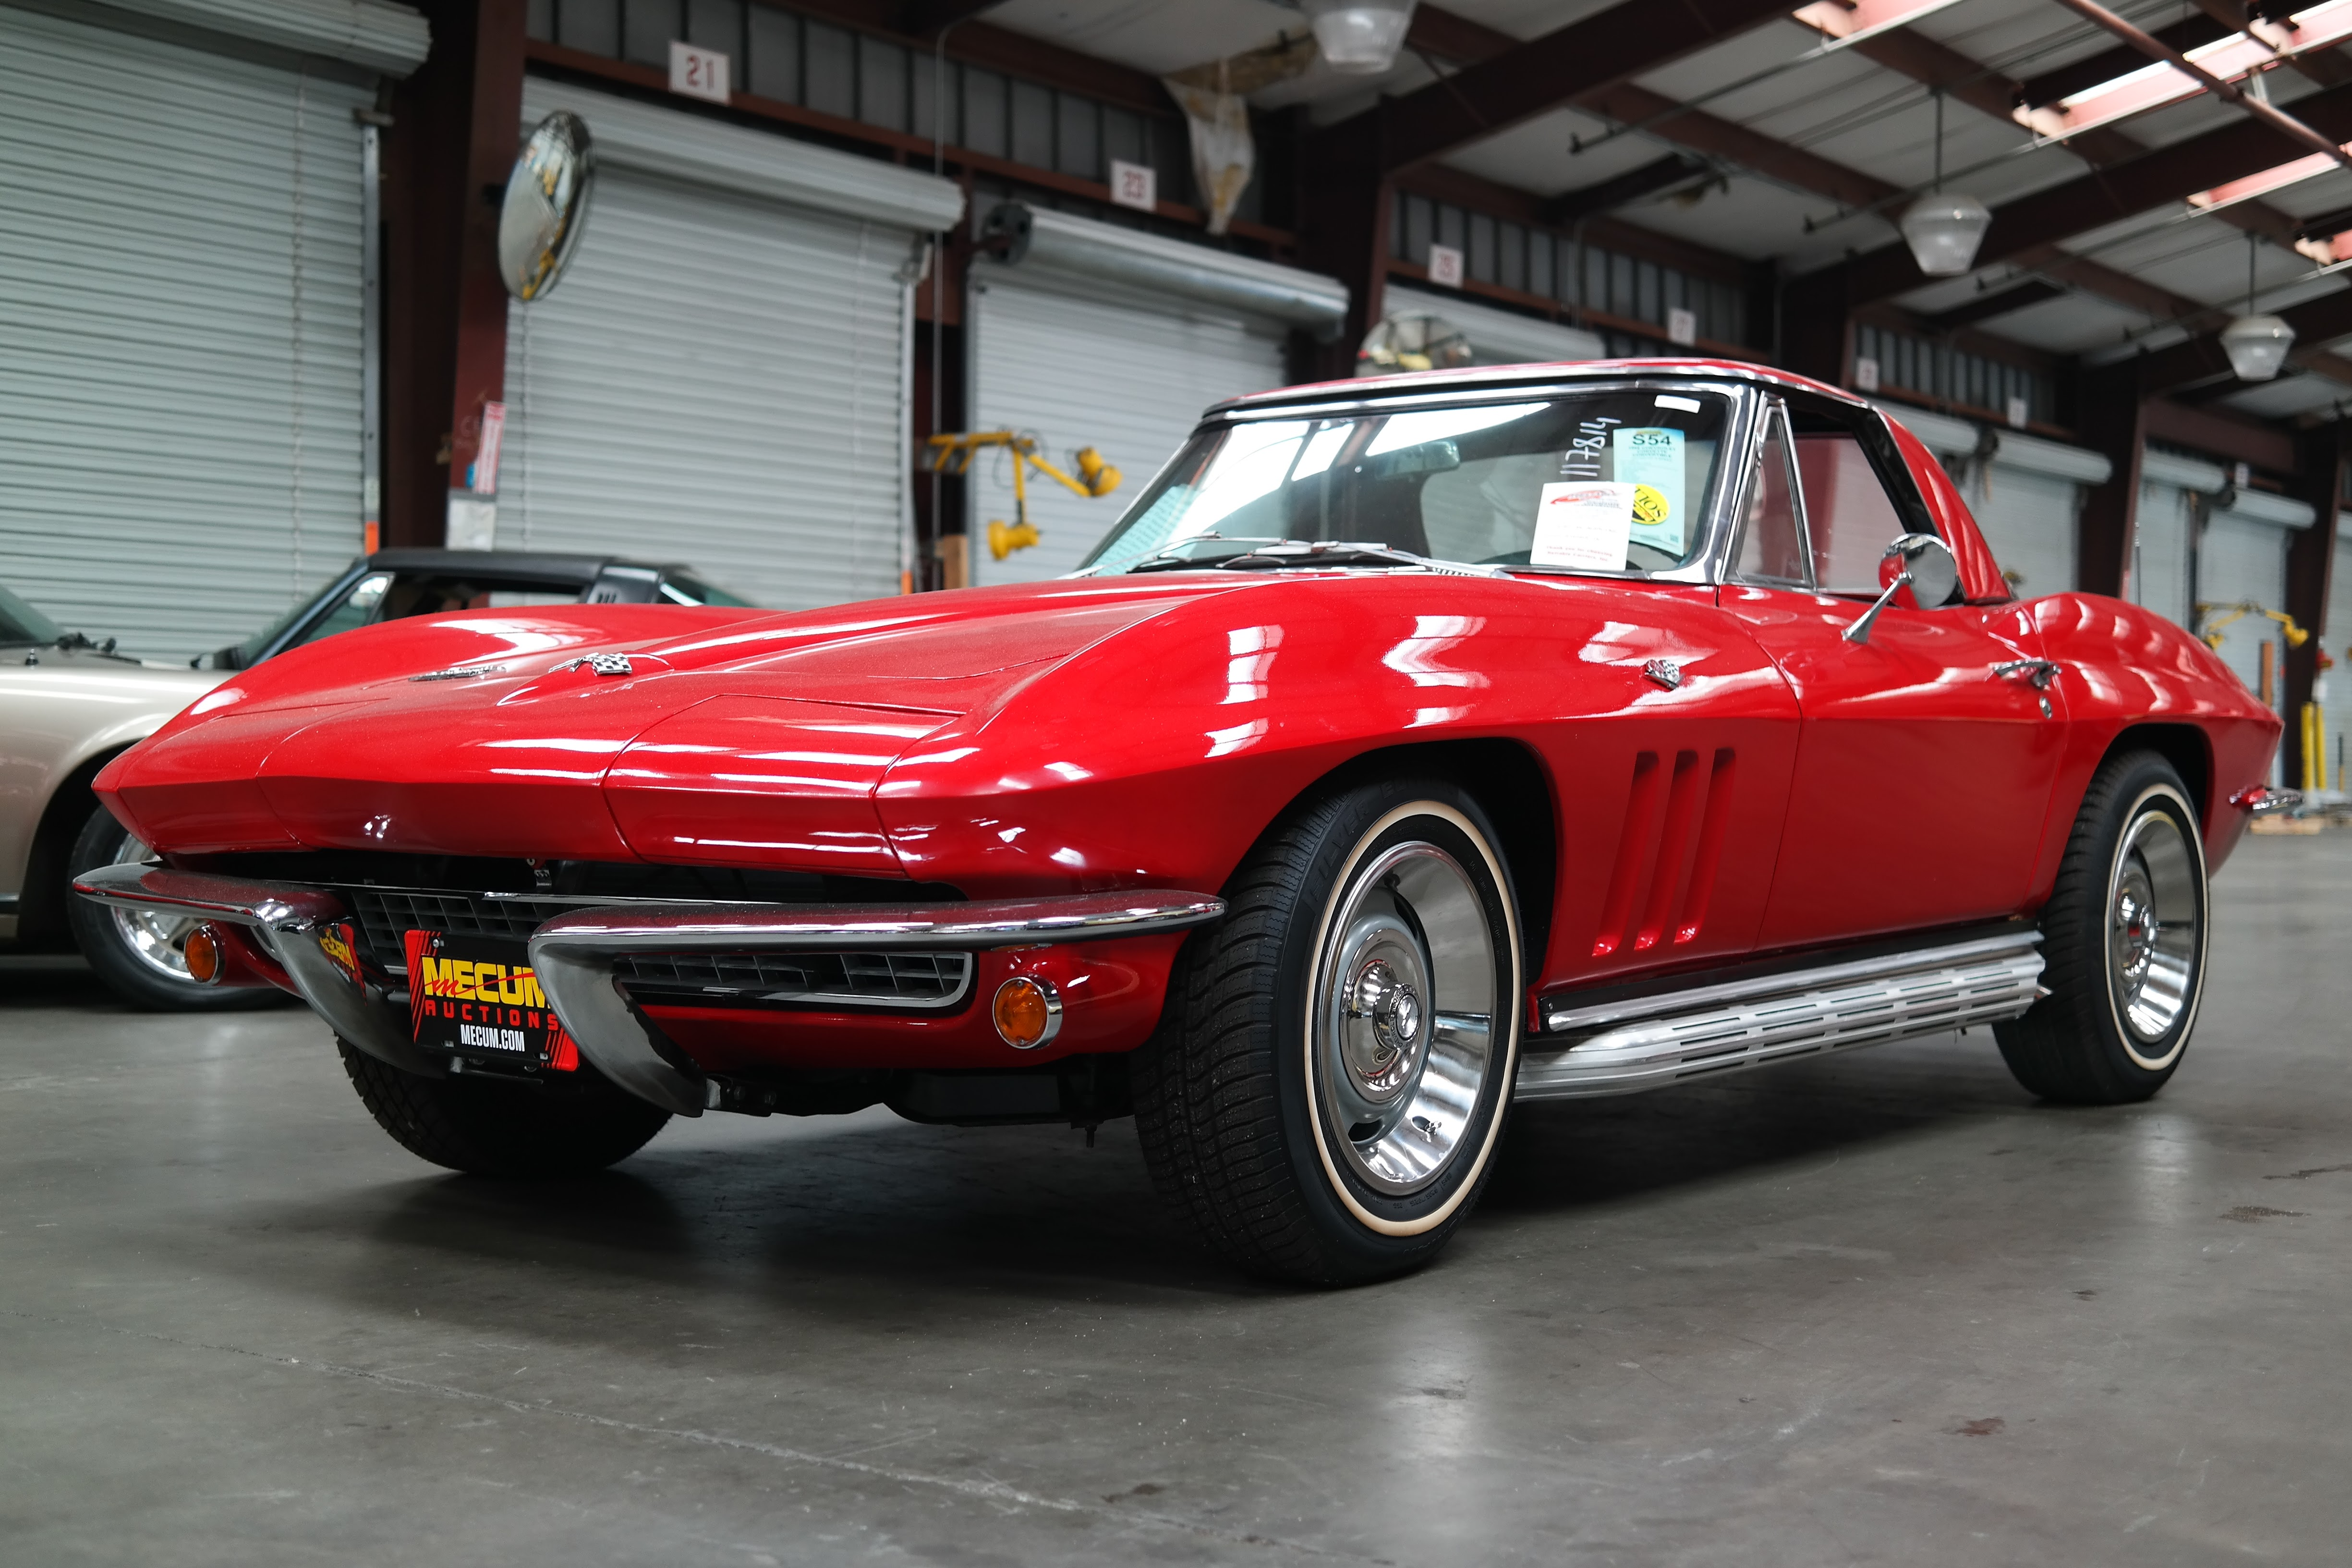 Classic Corvette shipping from USA to New Zealand